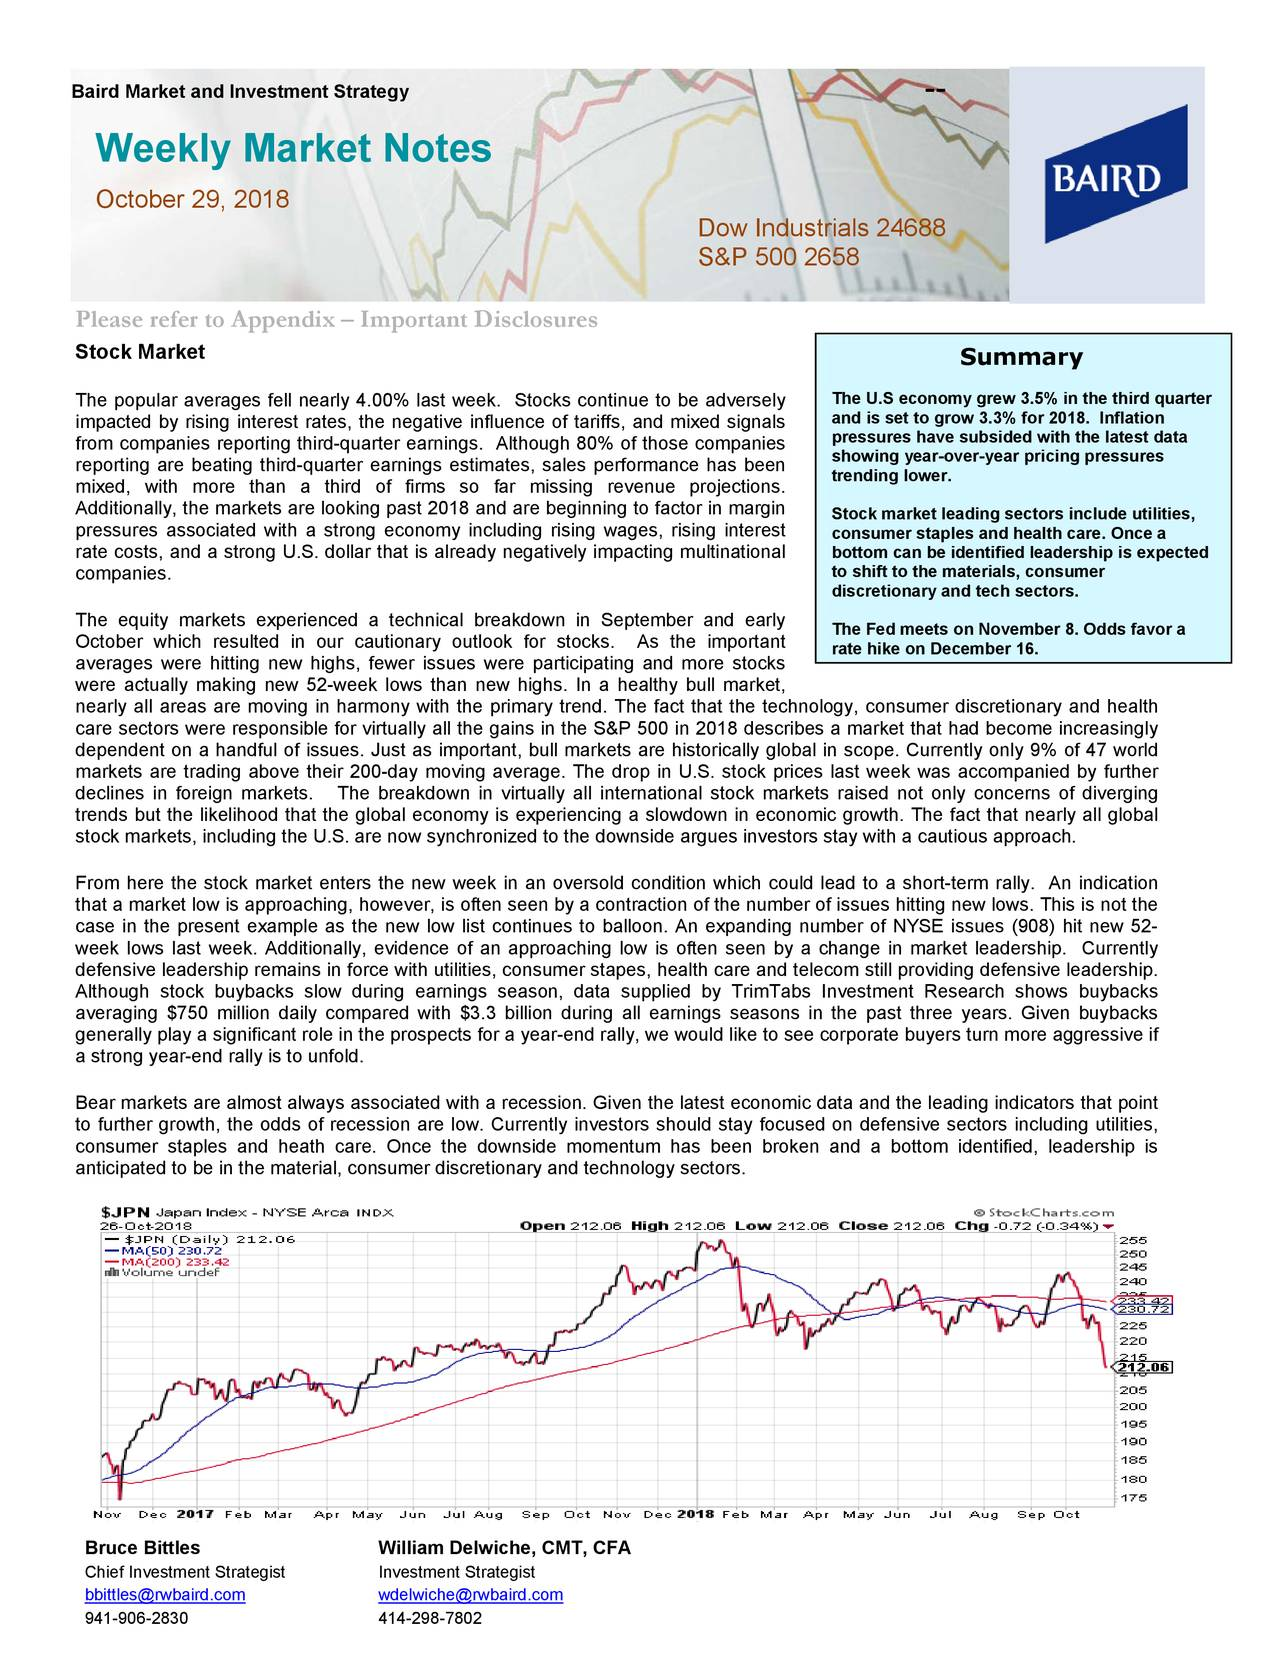 Weekly Market Notes October 29, 2018 Dow Industrials 24688 S&P 500 2658 Please refer to Appendix – Important Disclosures Stock Market Summary The popular averages fell nearly 4.00% last week. Stocks continue to be adversely The U.S economy grew 3.5% in the third quarter impacted by rising interest rates, the negative influence of tariffs , and mixed signals and is set to grow 3.3% for 2018. Inflation pressures have subsided with the latest data from companies reporting third-quarter earnings. Although 80% of those companies showing year-over-year pricing pressures reporting are beating third-quarter earnings estimates, sales performance has been trending lower. mixed, with mor e than a third of firms so far missing revenue projections . Additionally, the markets are looking past 2018 and are beginning to factor in margin Stock market leading sectors include utilities, pressures associated with a strong economy including rising wages, rising interest consumer staples and health care. Once a rate costs, and a strong U.S. dollar that is already negatively impacting multinational bottom can be identified leadership is expected companies. to shift to the materials, consumer discretionary and tech sectors. The equity markets experienced a technical breakdown in September and early The Fed meets on November 8. Odds favor a October which resulted in our cautionary outlook for stocks. As the important rate hike on December 16. averages were hitting new highs , fewer issues were participating and more stocks were actually making new 52-week lows than new highs. In a healthy bull market , nearly all areas are moving in harmony with the primary trend. The fact that the technology, consumer discr etionary and health care sectors were responsible for virtually all the gains in the S&P 500 in 2018 describes a market that had become increasingly dependent on a handful of issues. Just as important, bull markets are historically global in scope. Currenly only 9% of 47 world markets a